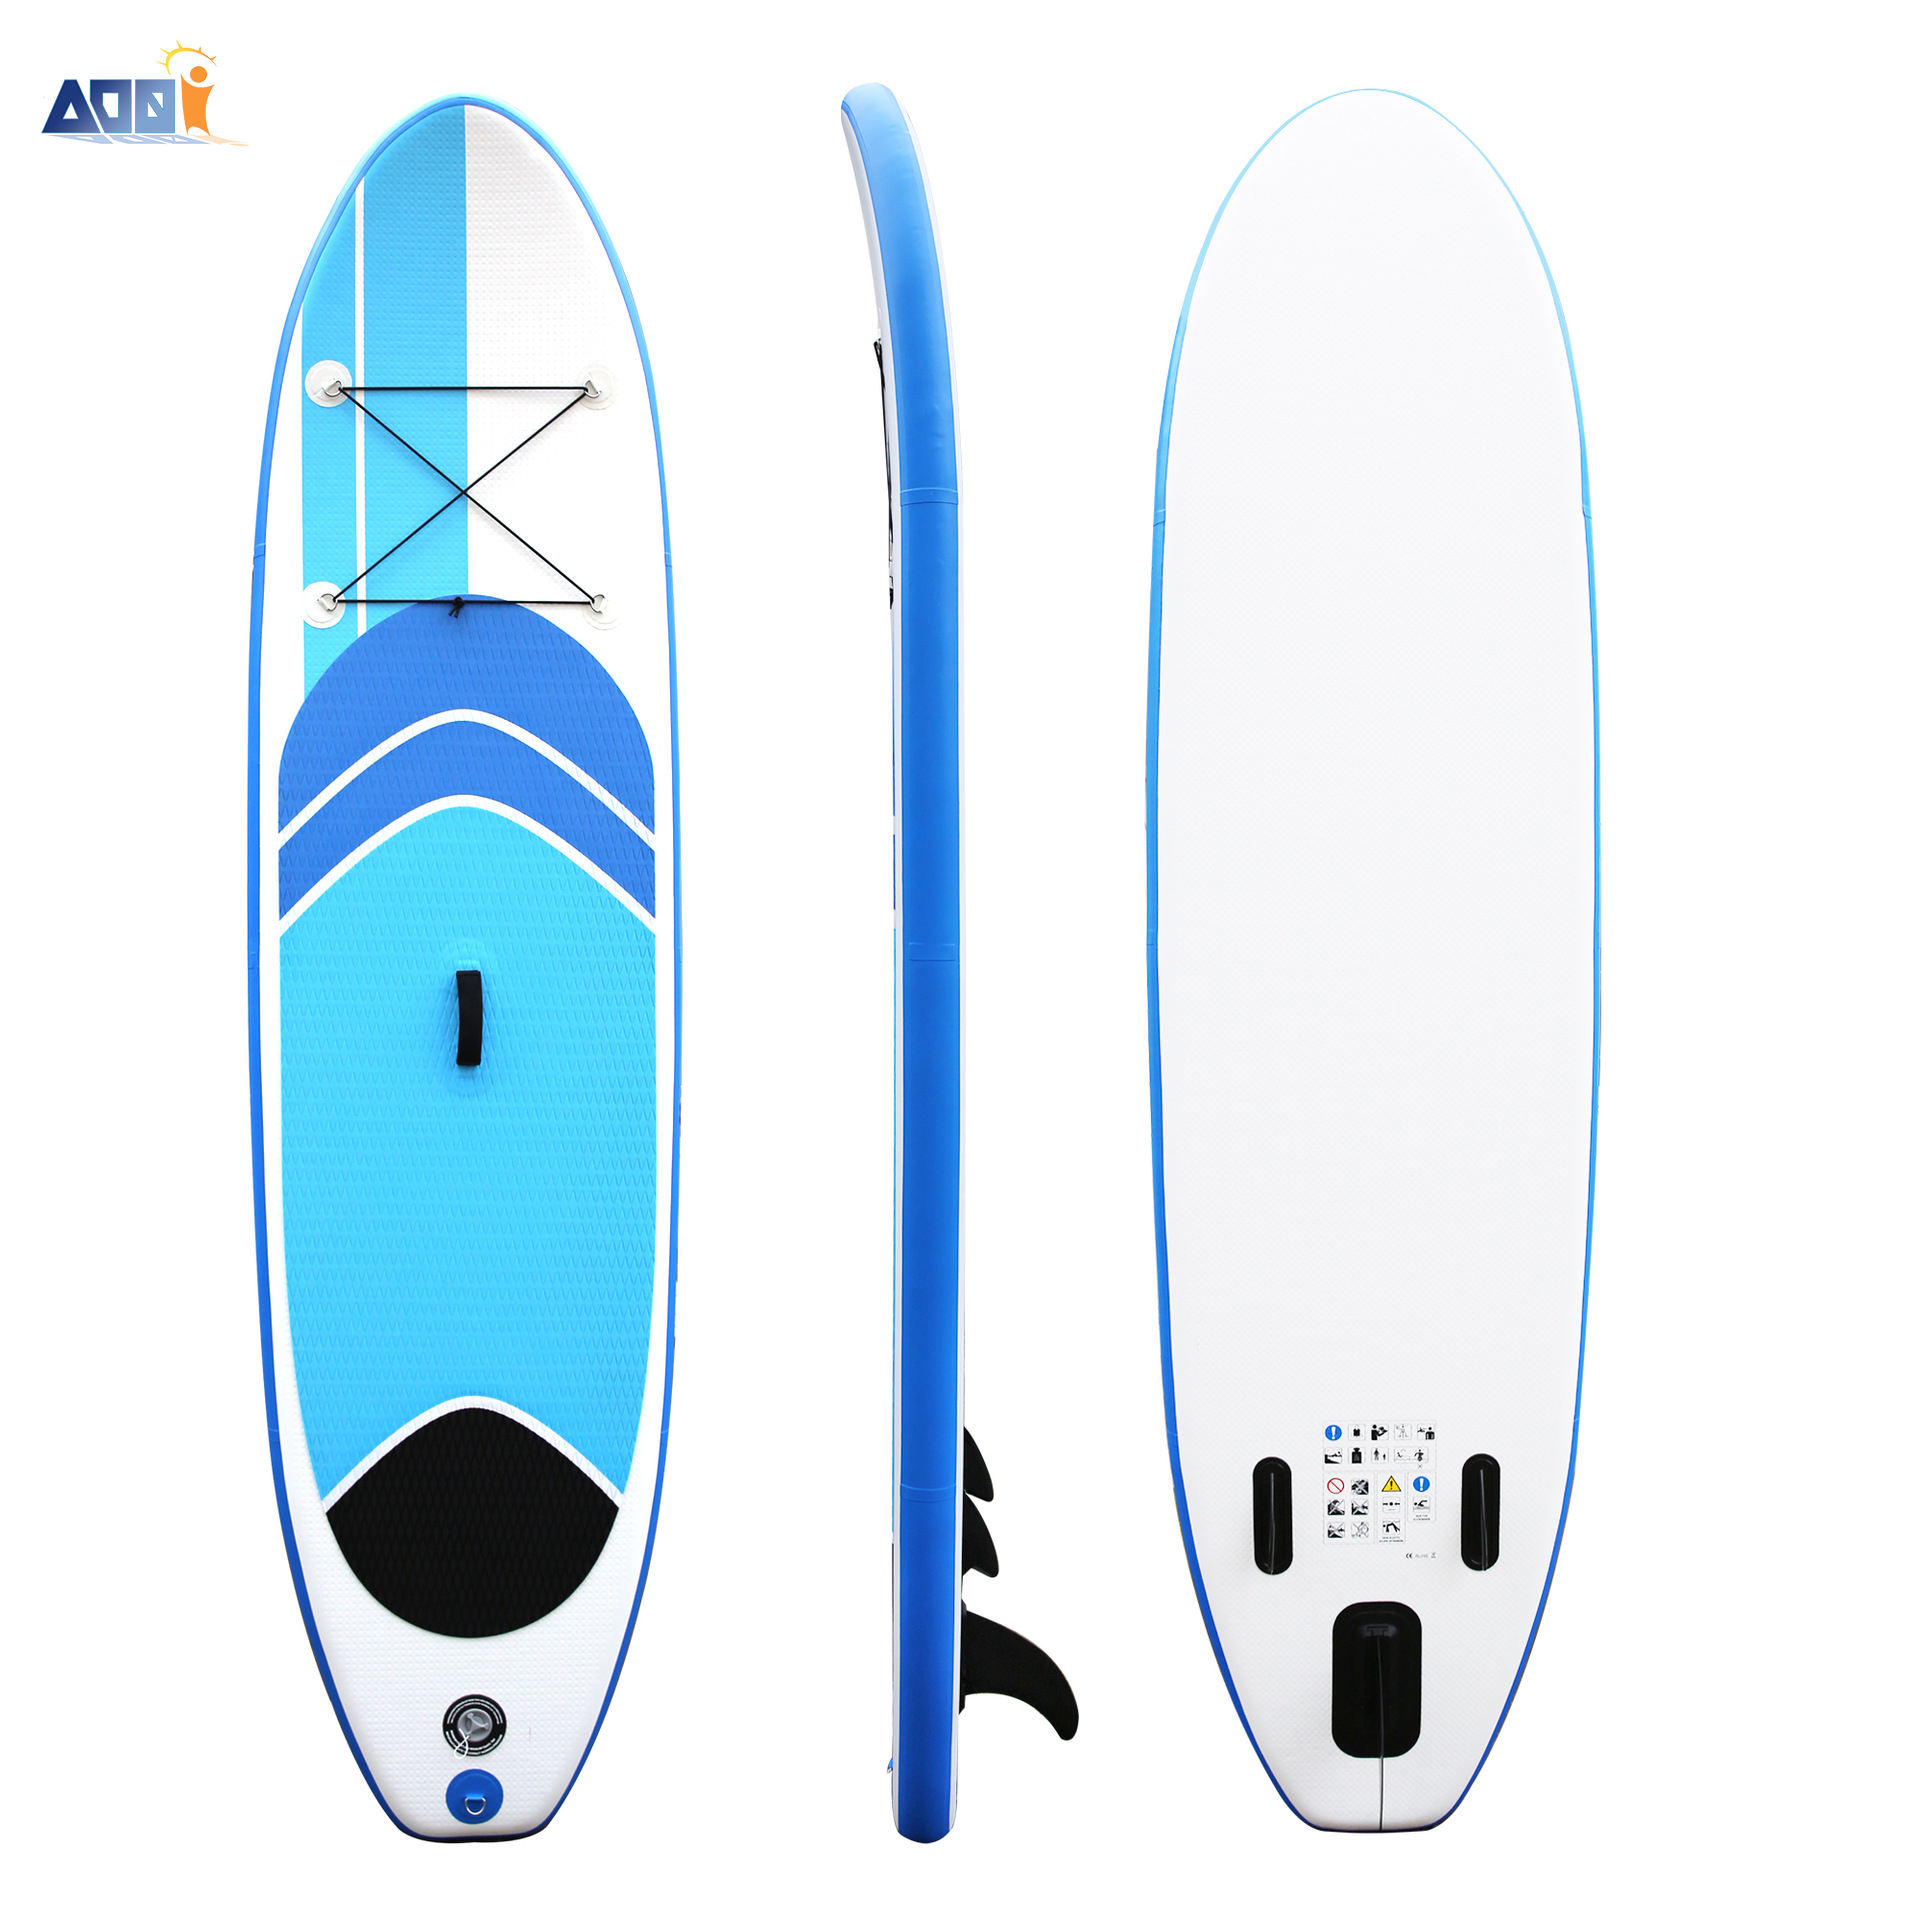 Double Layer Drop Stitch PVC Inflatable Surfboards Standard set coiled Soft Top Stand Up Surfing Paddle Board Sup